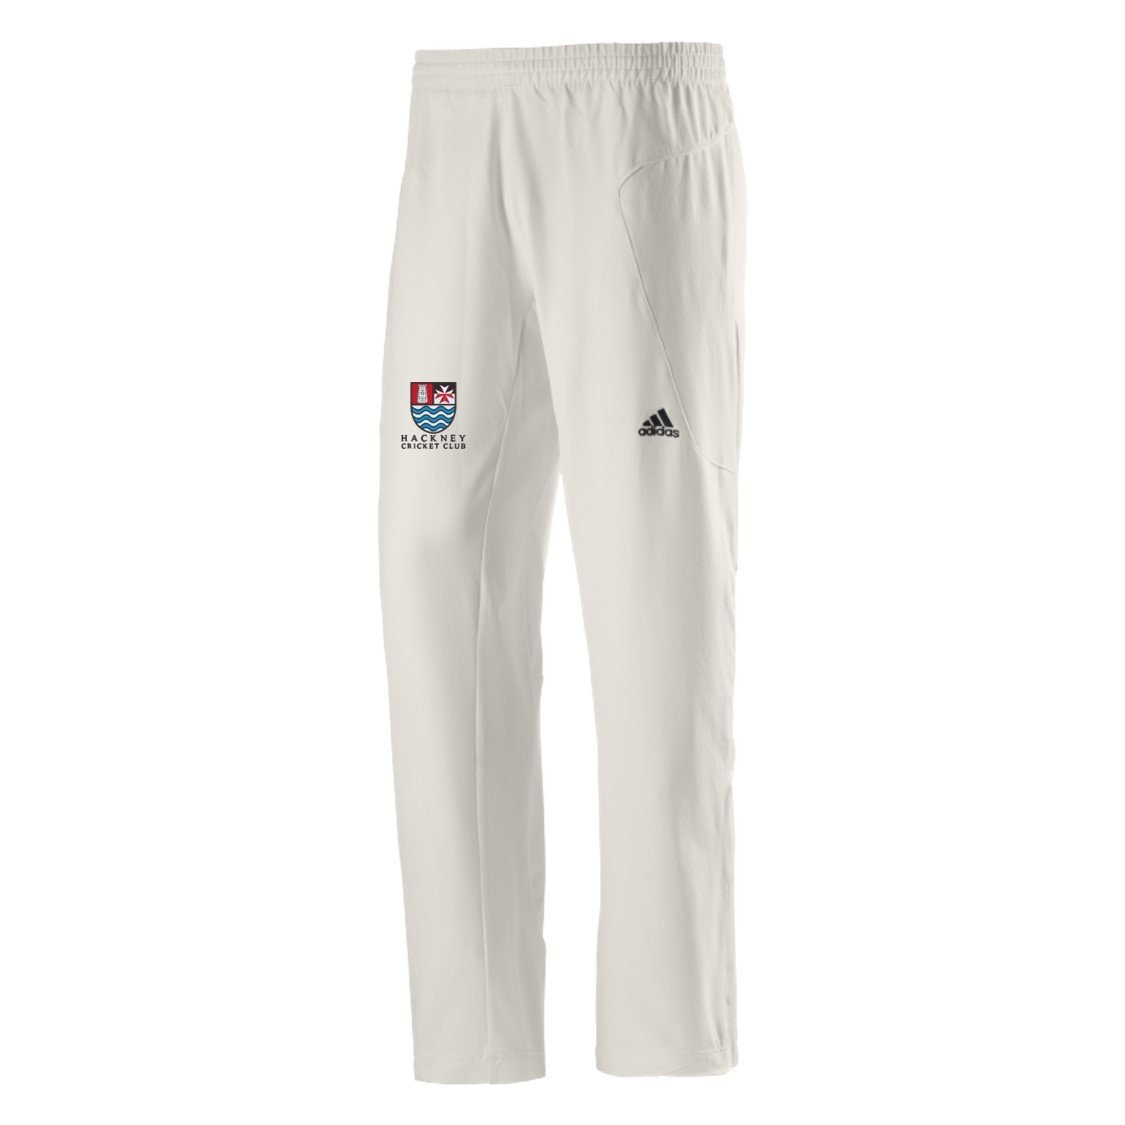 Hackney CC Adidas Elite Playing Trousers